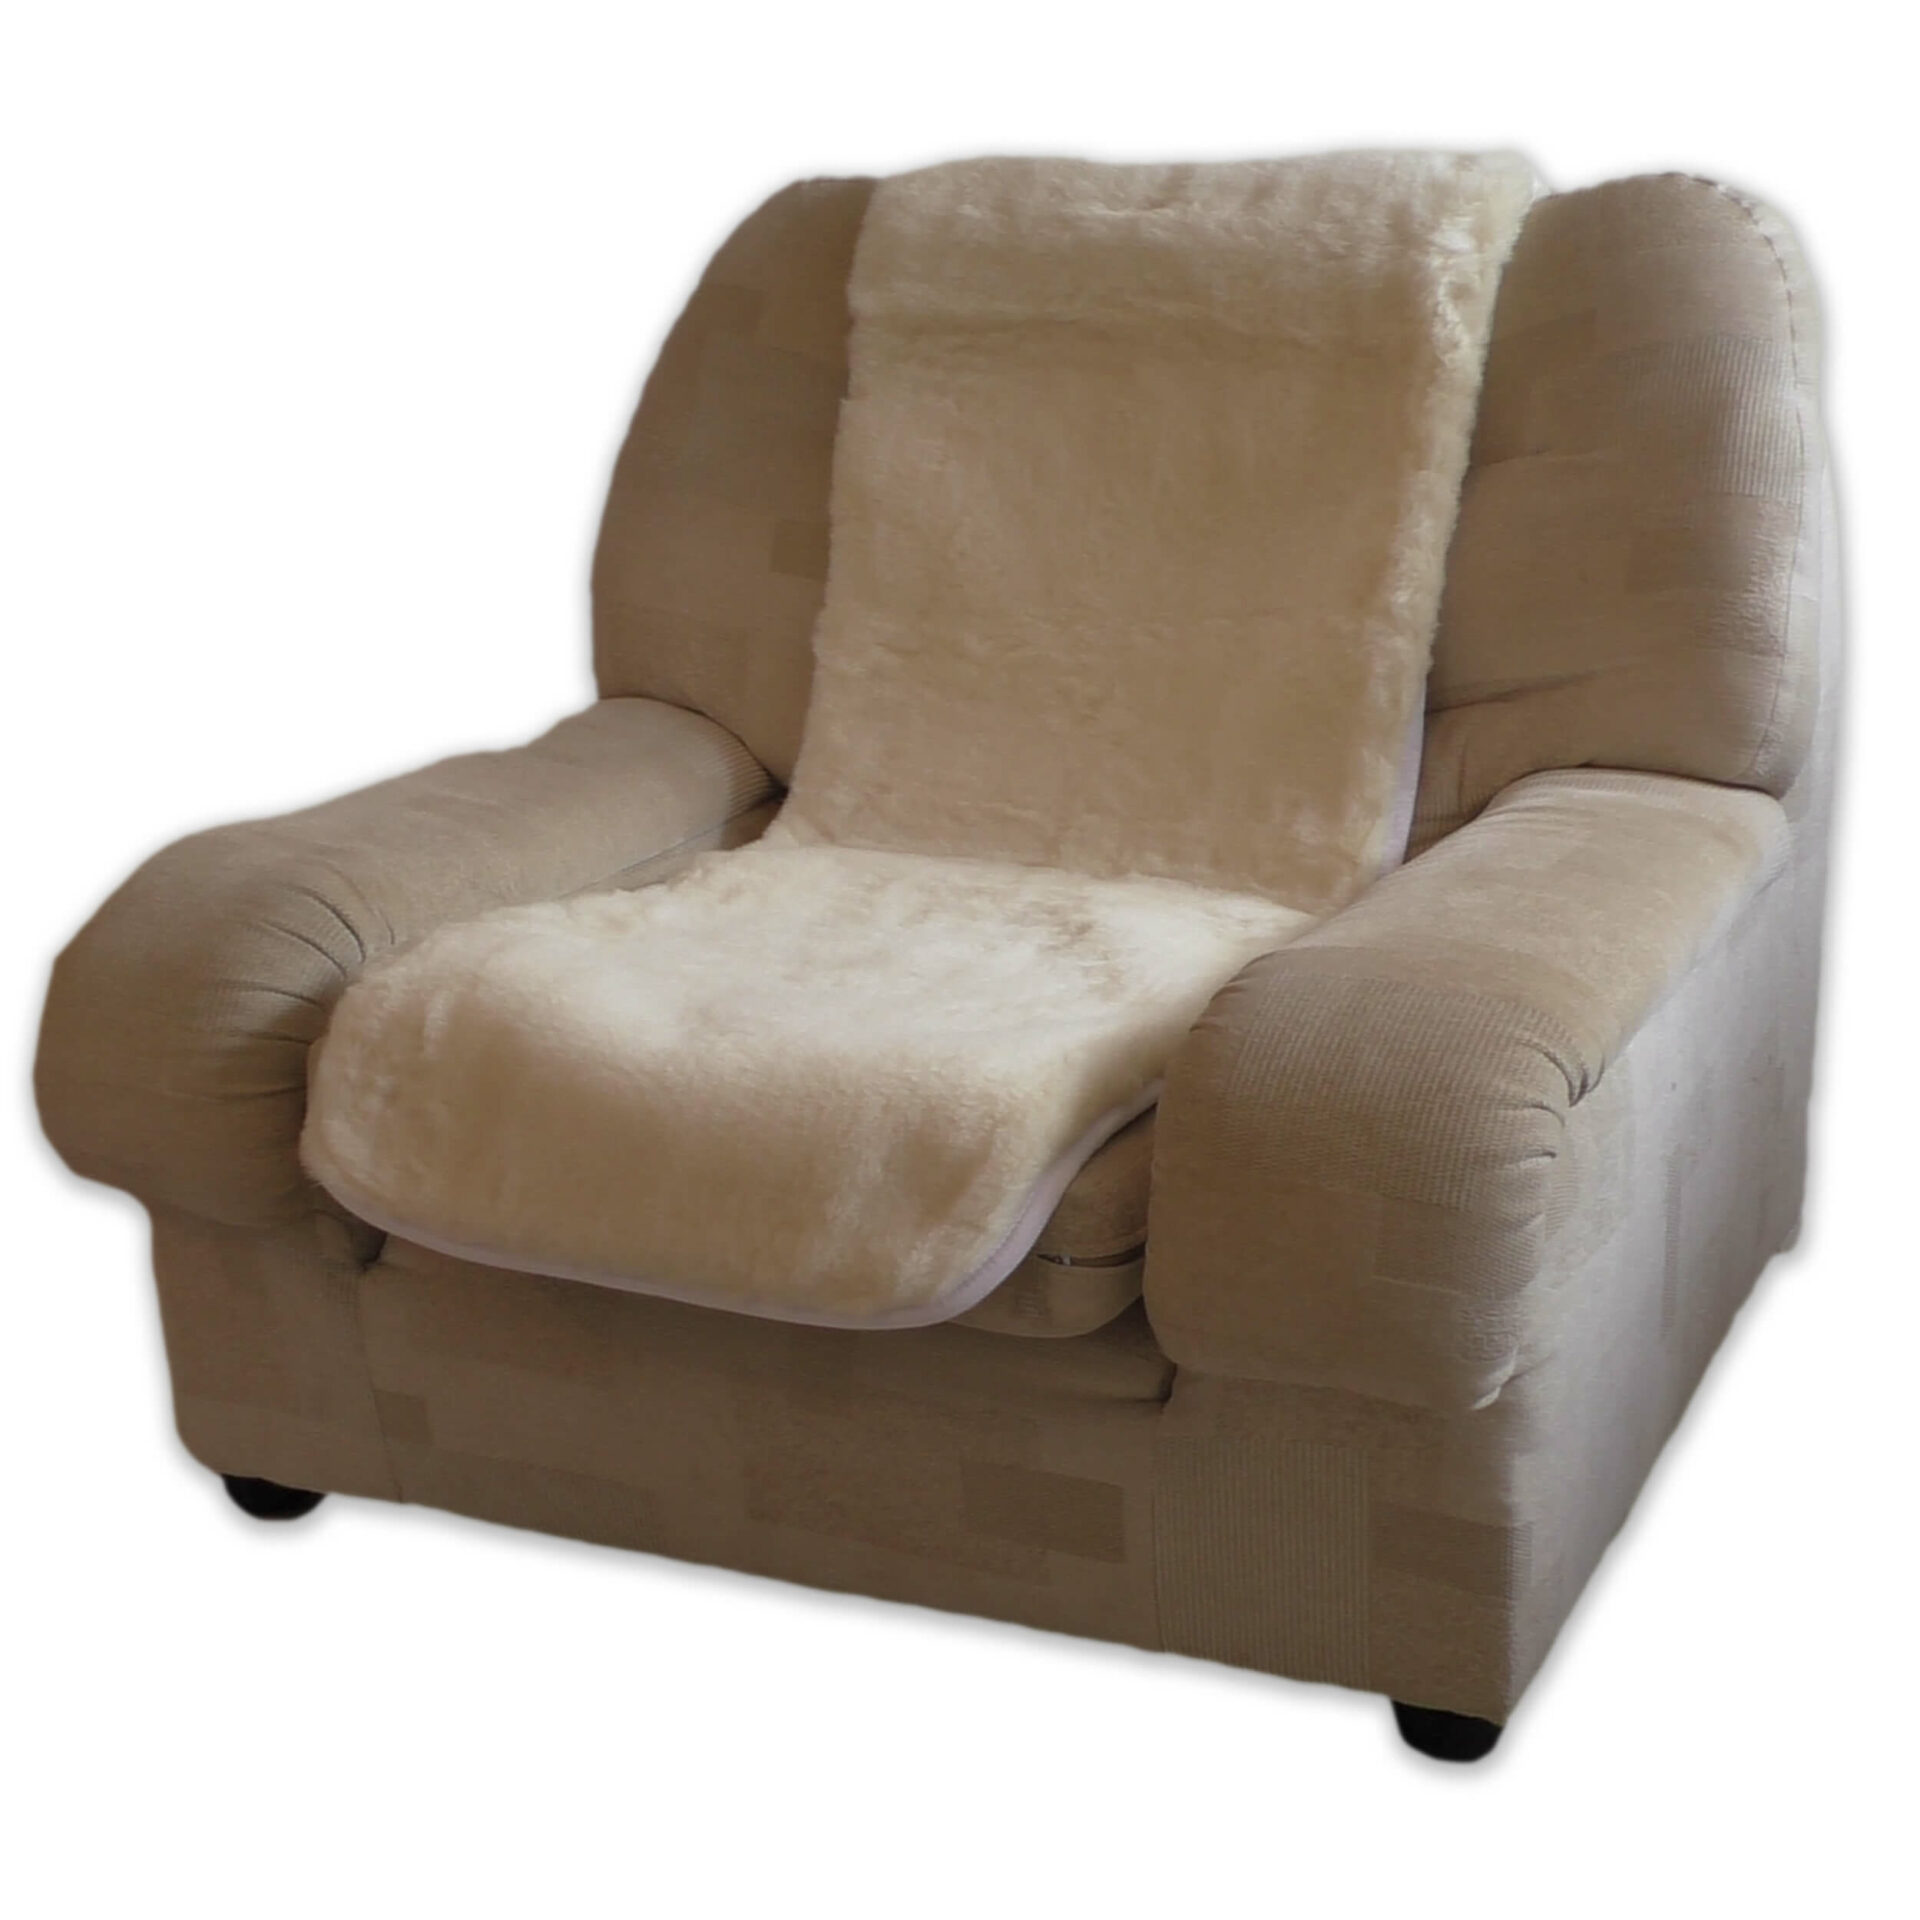 Pressure Care Overlay for Arm Chair